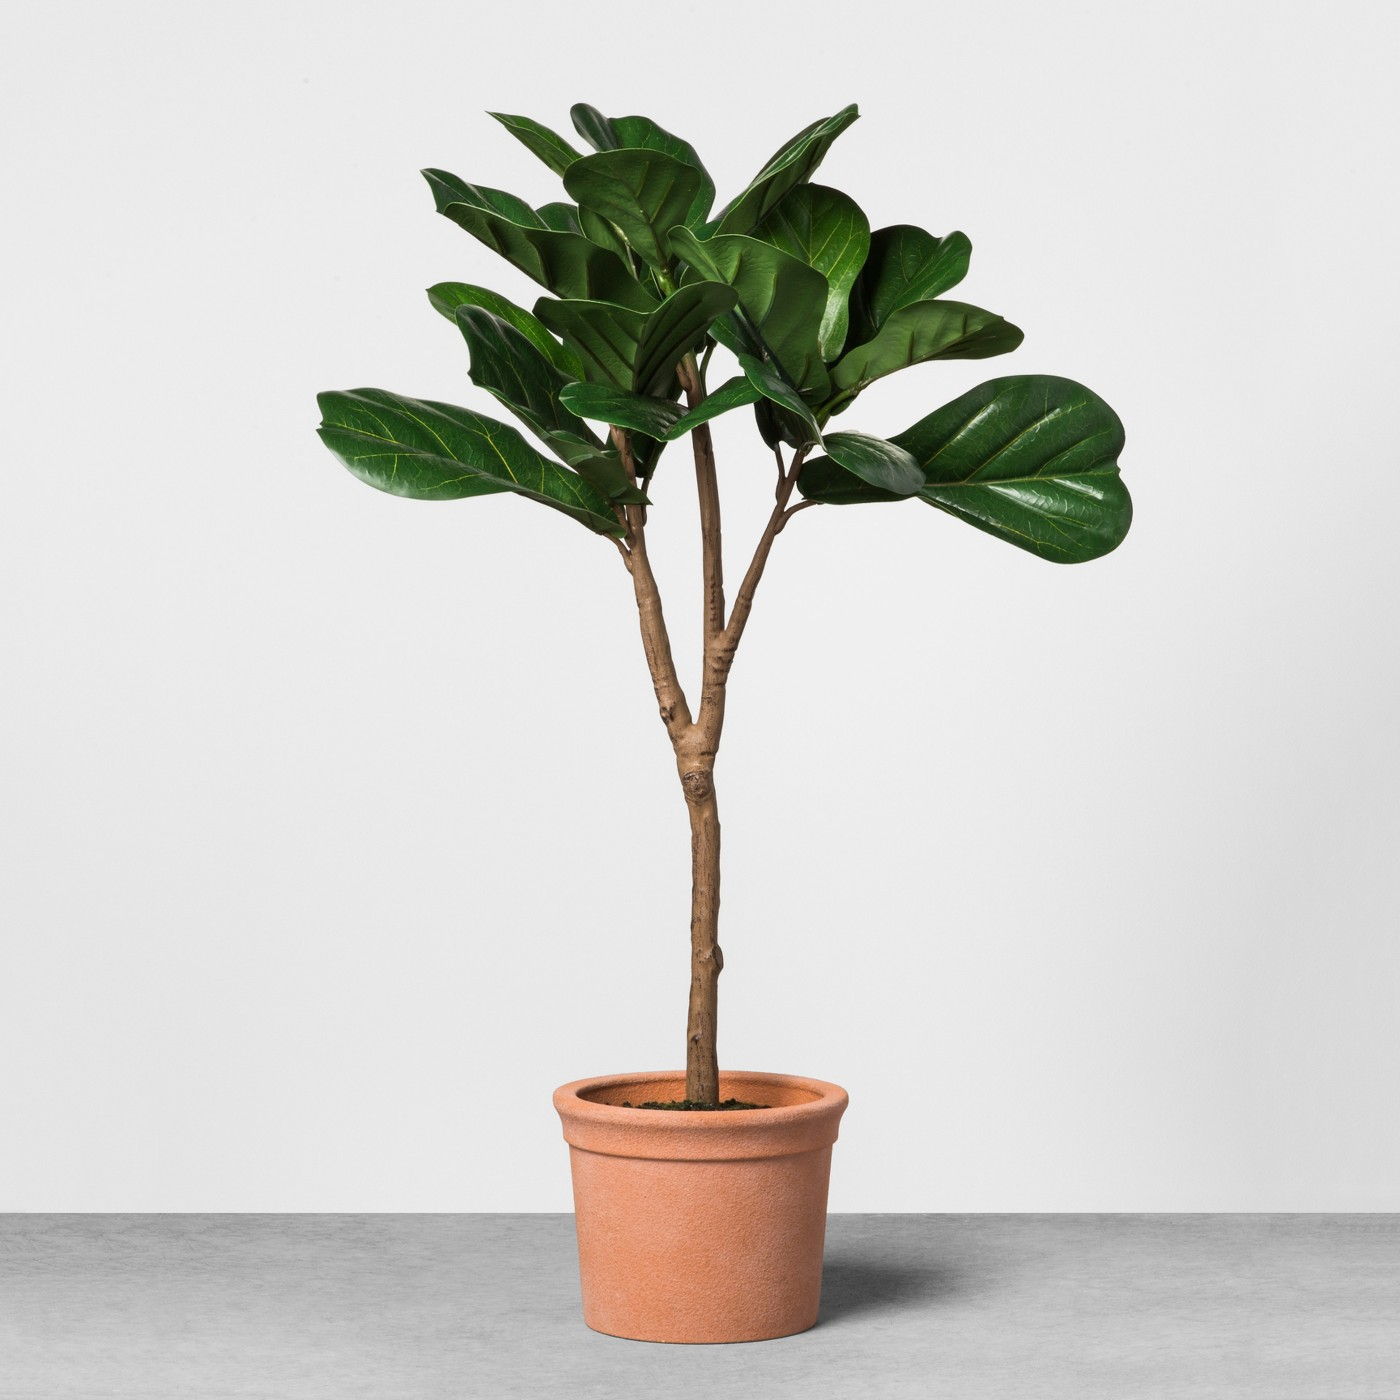 Faux Fiddle Leaf Plant in Terracotta Pot - Hearth & Hand™ with Magnolia - image 1 of 2